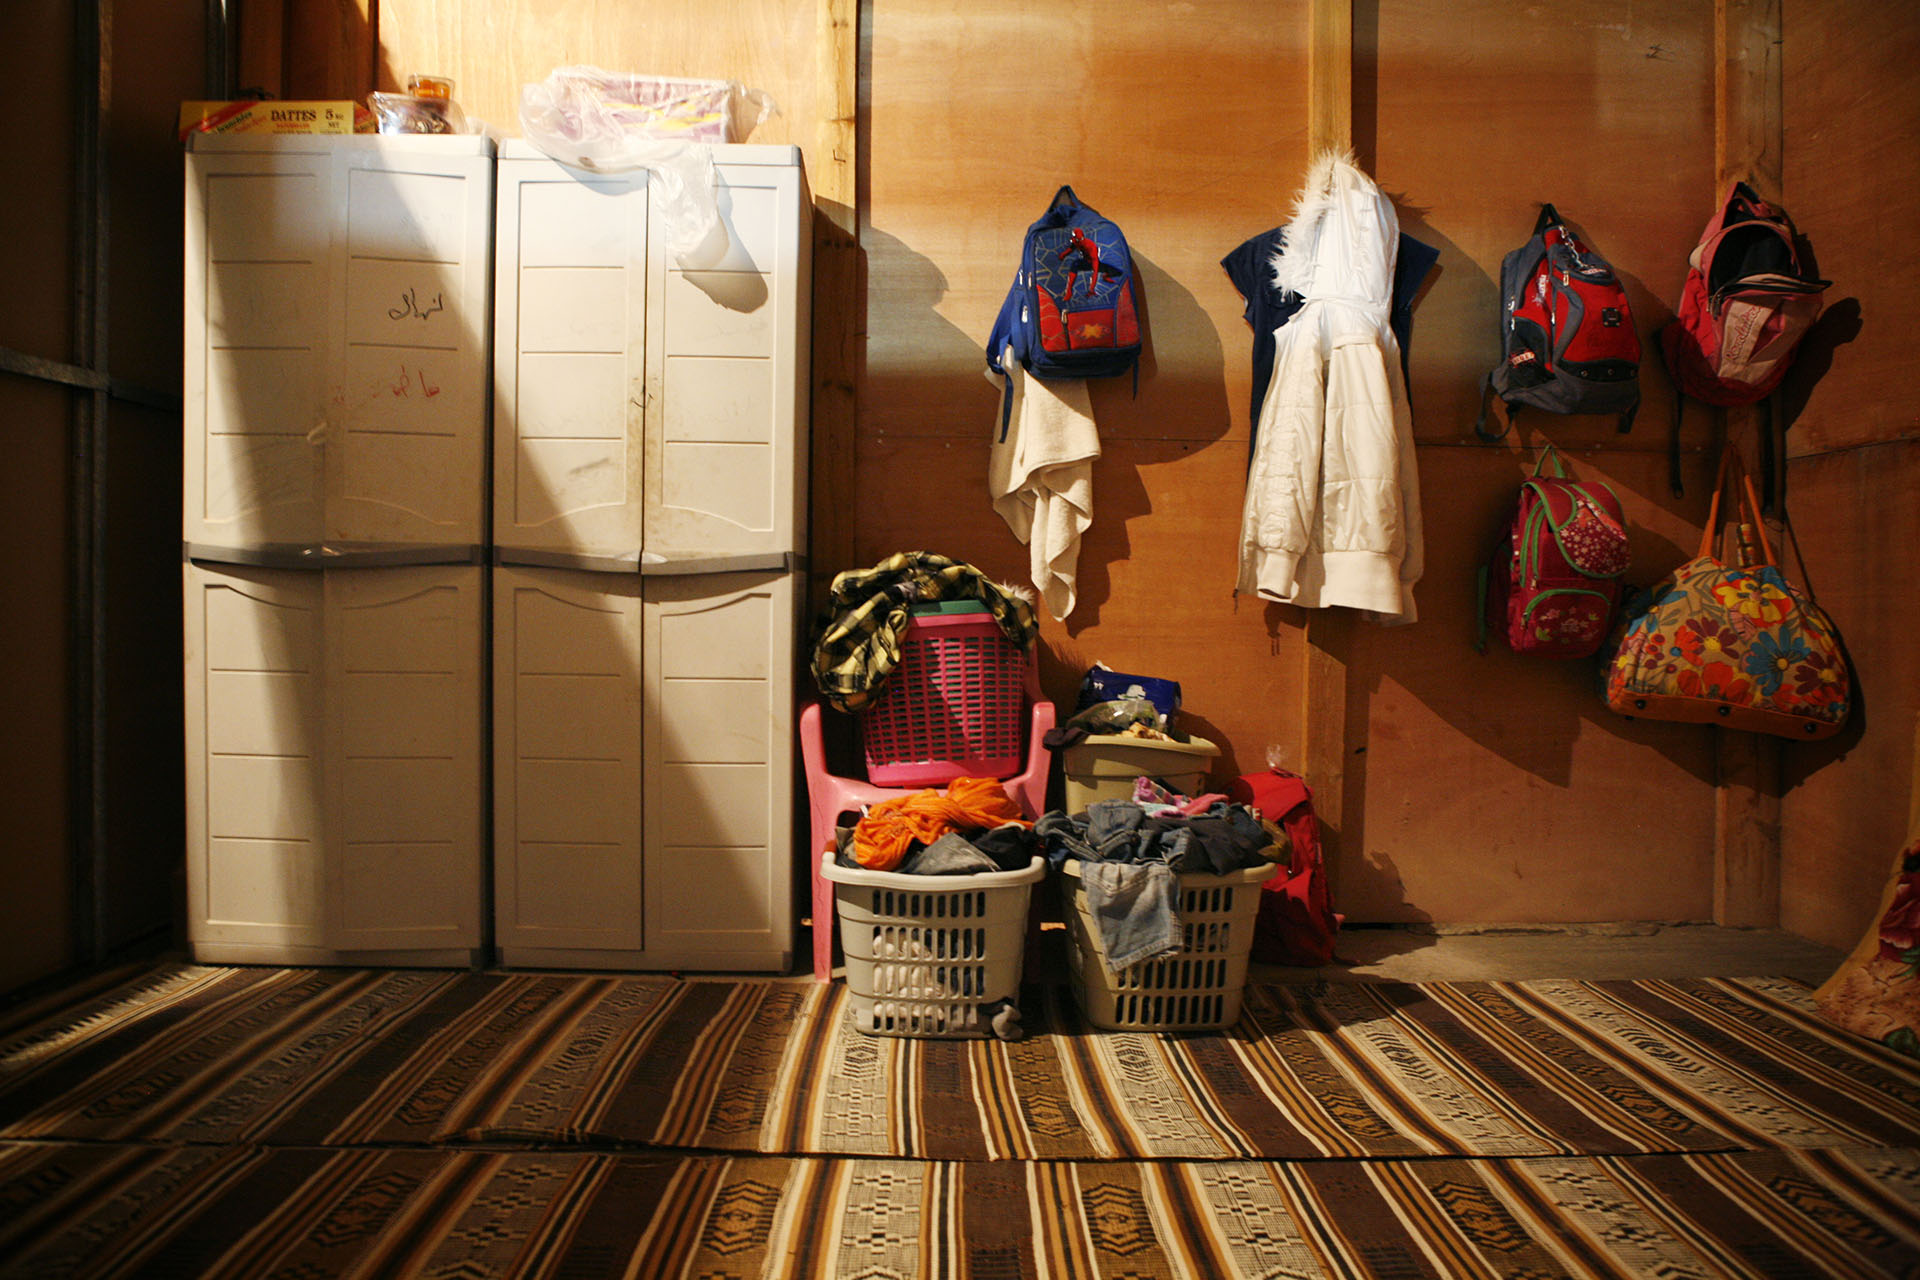 One of the children's bedroom in Fatima's family home. April 2010